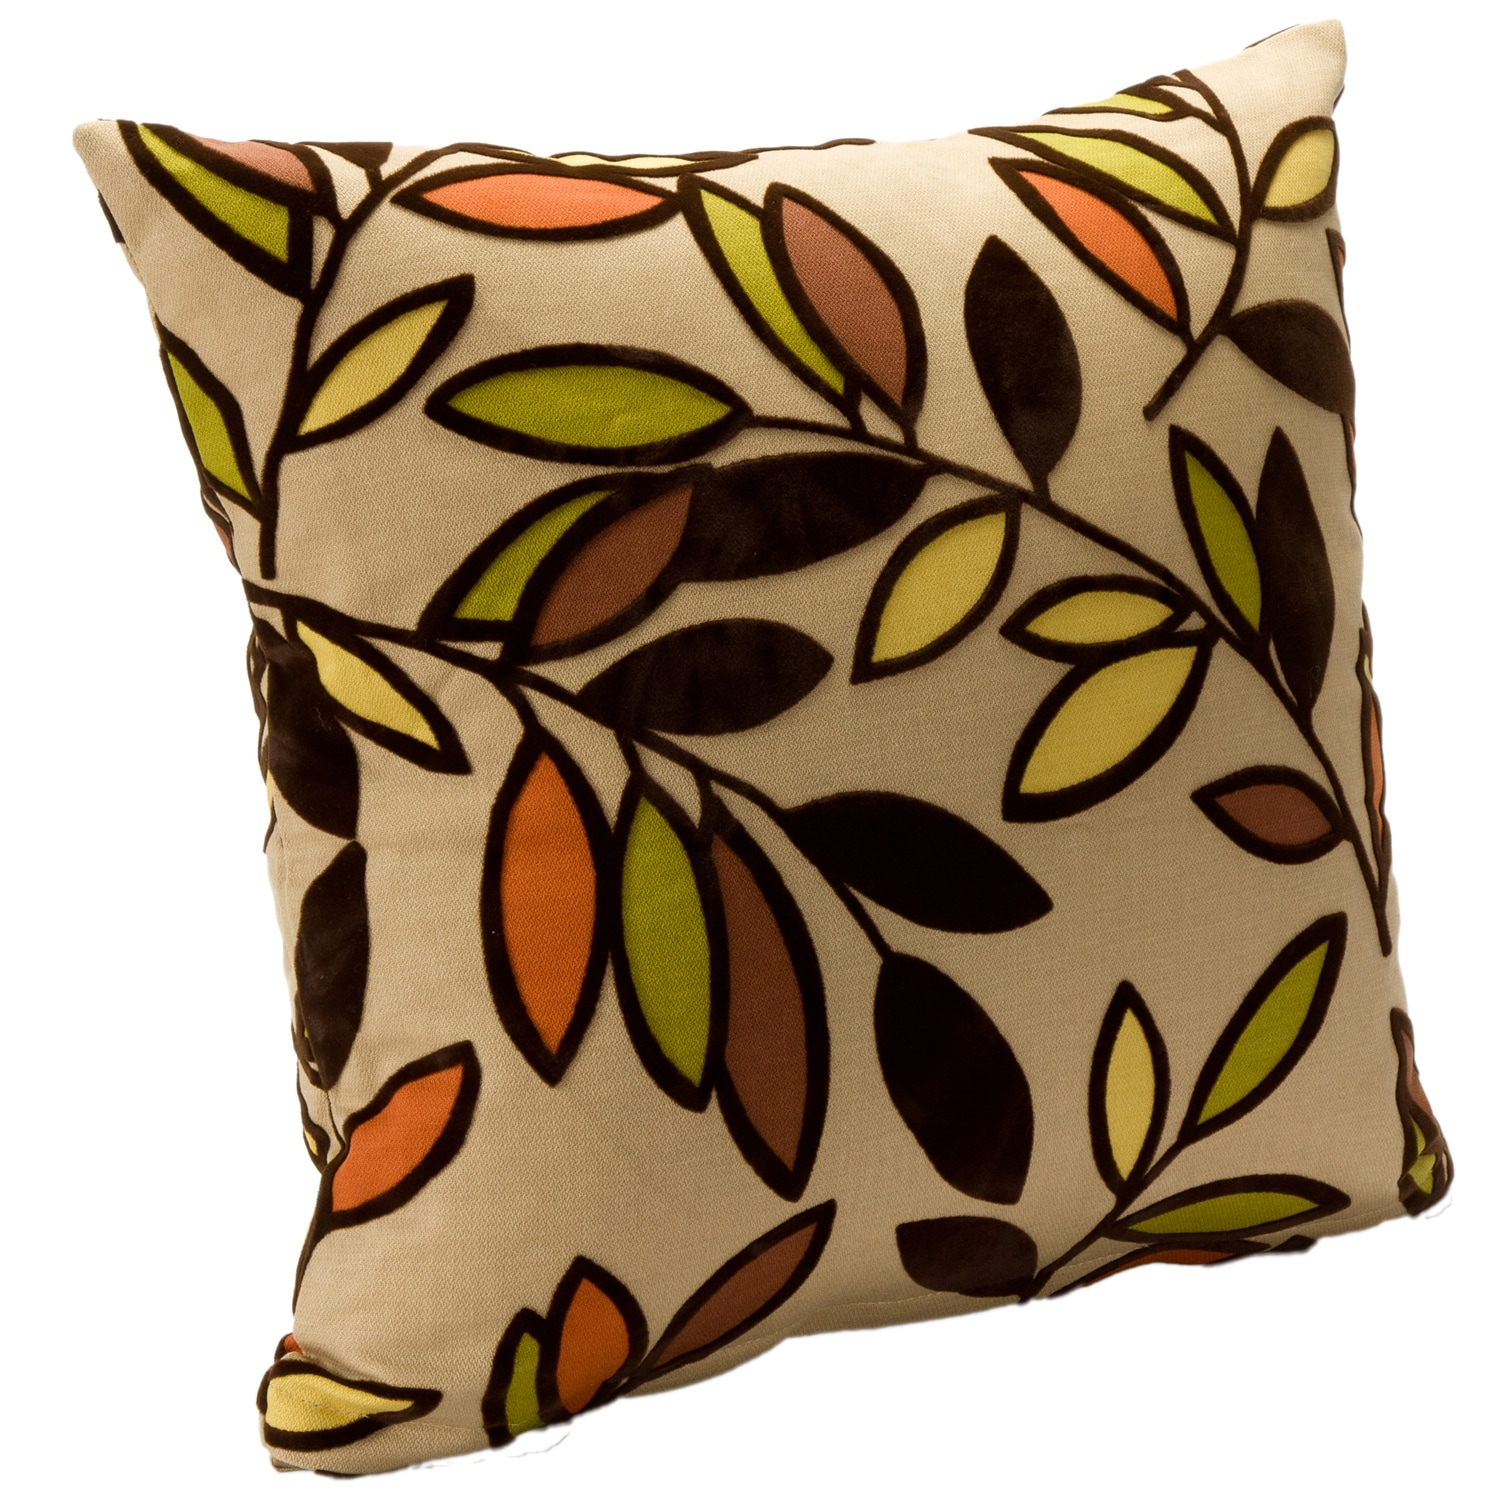 Contemporary 'Kirby Jewel' Square Accent Pillow - Thumbnail 0